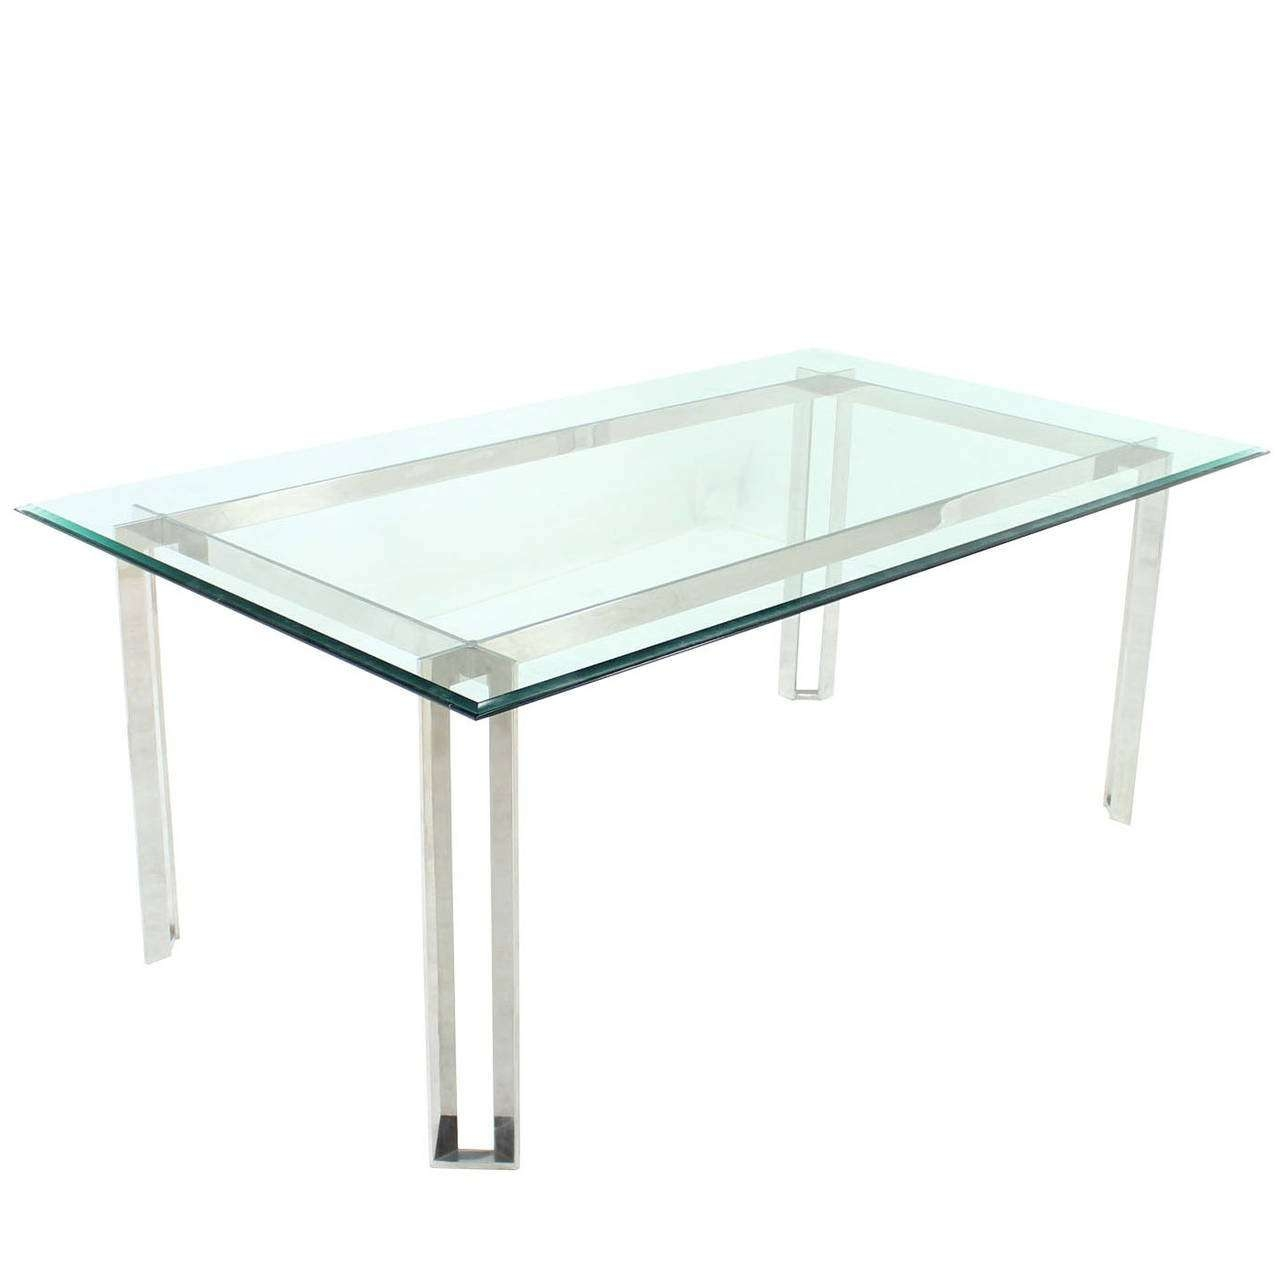 Polished Stainless Steel And Thick Glass Top Dining Room Table For Pertaining To Well Liked Thick Glass Coffee Table (View 13 of 20)